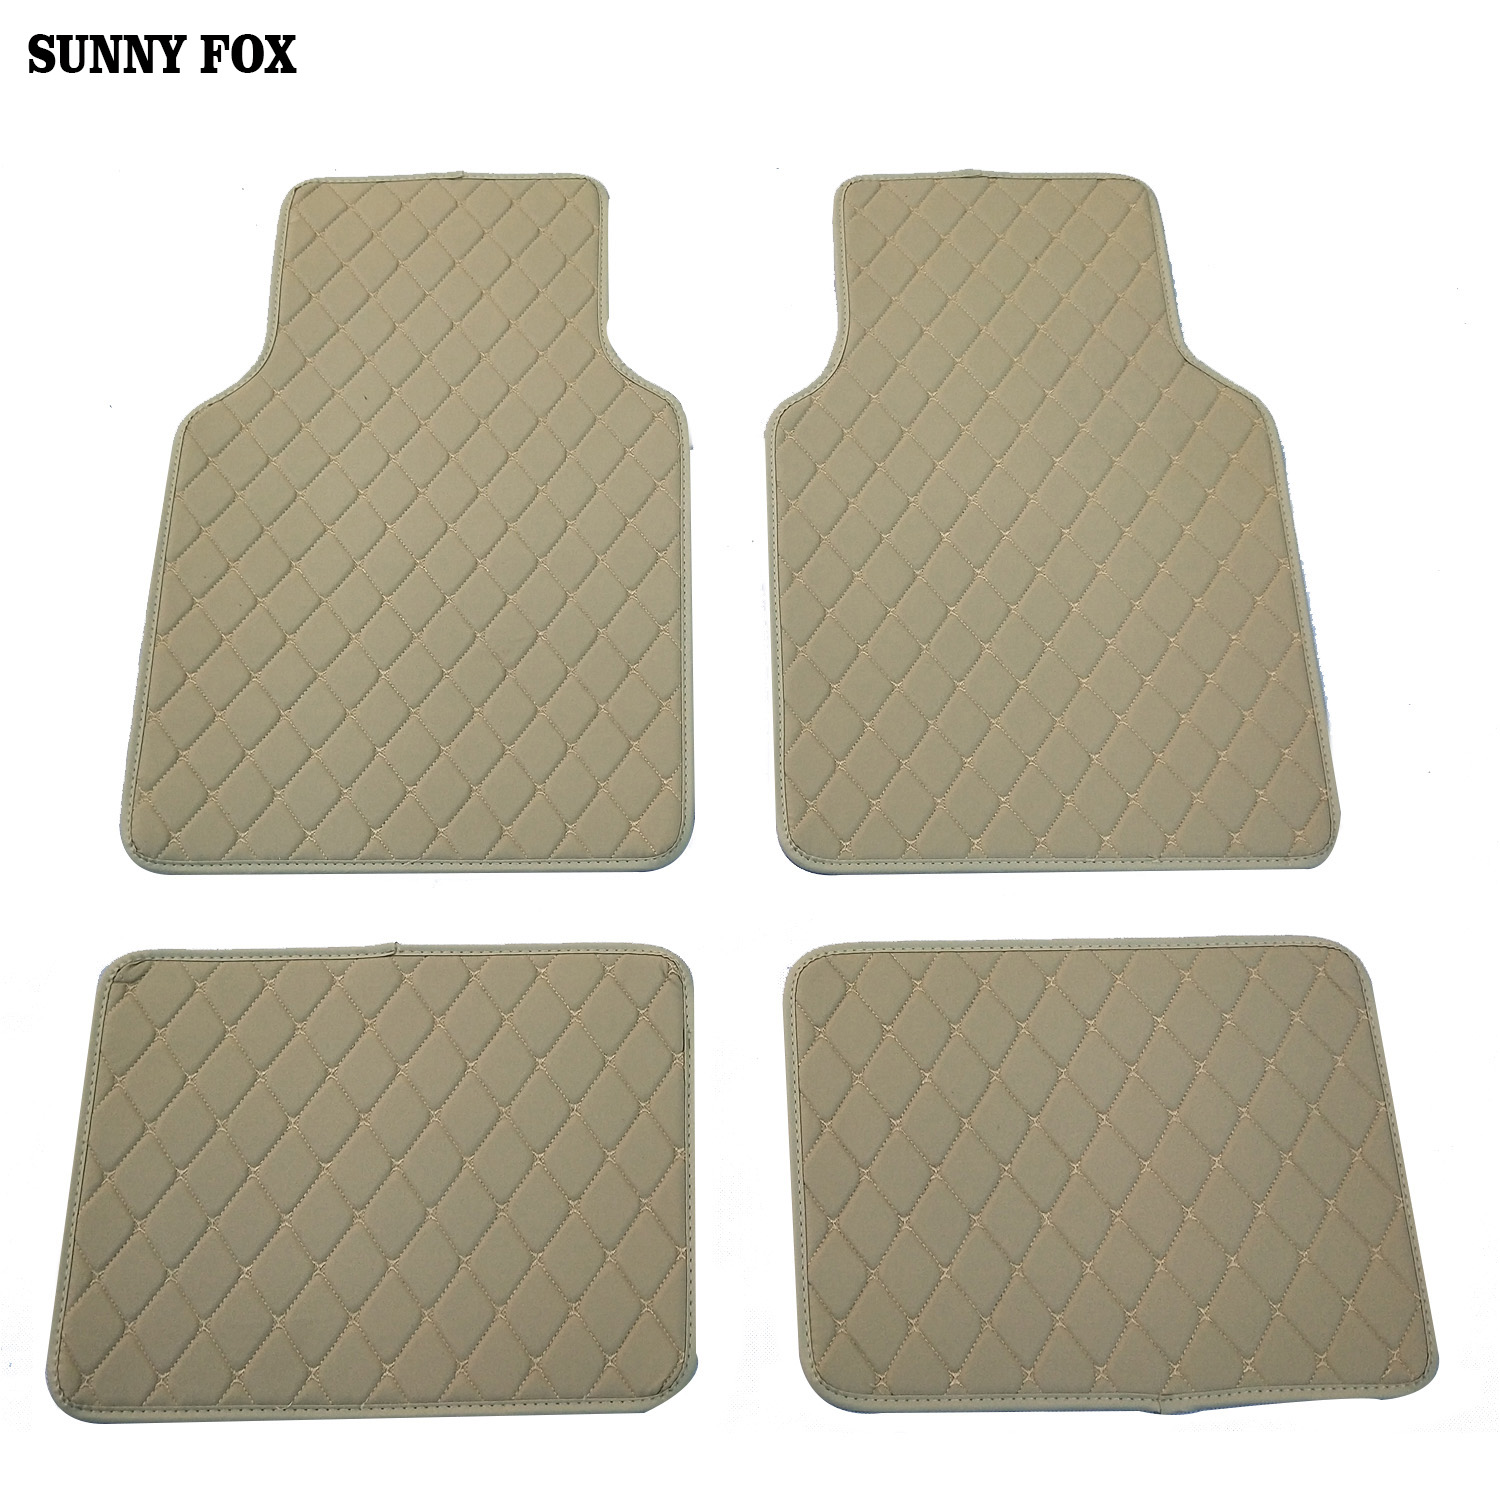 Universal Car floor mats for Lexus CT200h ES250/350/300h RX270/350/450H GX460h/<font><b>400</b></font> LX570 LS <font><b>NX</b></font> 5D car-styling carpet liners image